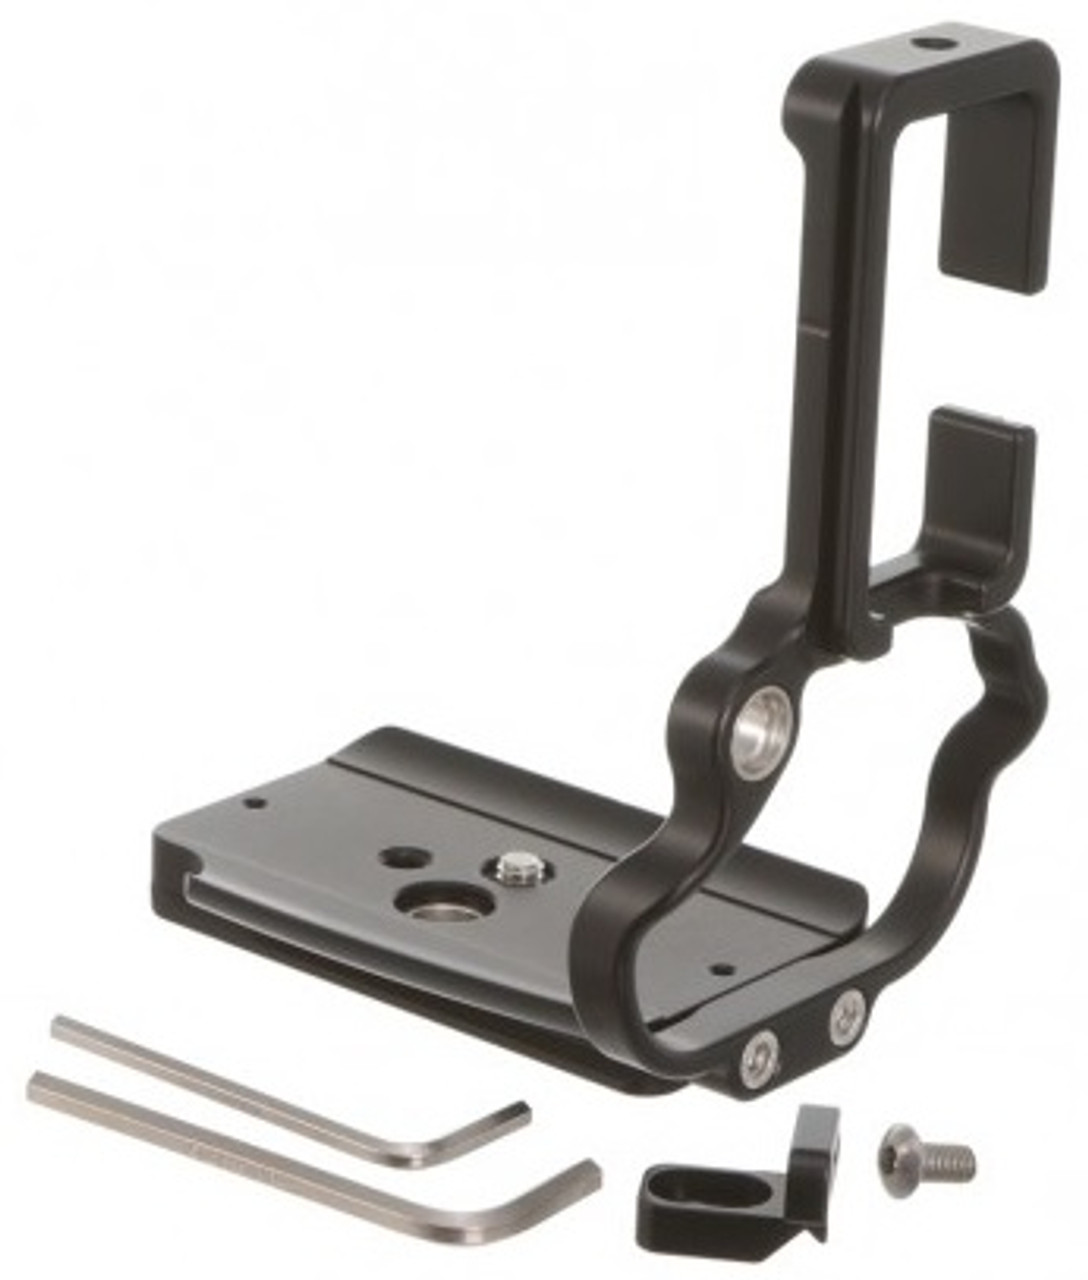 Kirk Enterprises L-Bracket for Canon EOS R5 and R6 Mirrorless Cameras with BG-R10 Grip